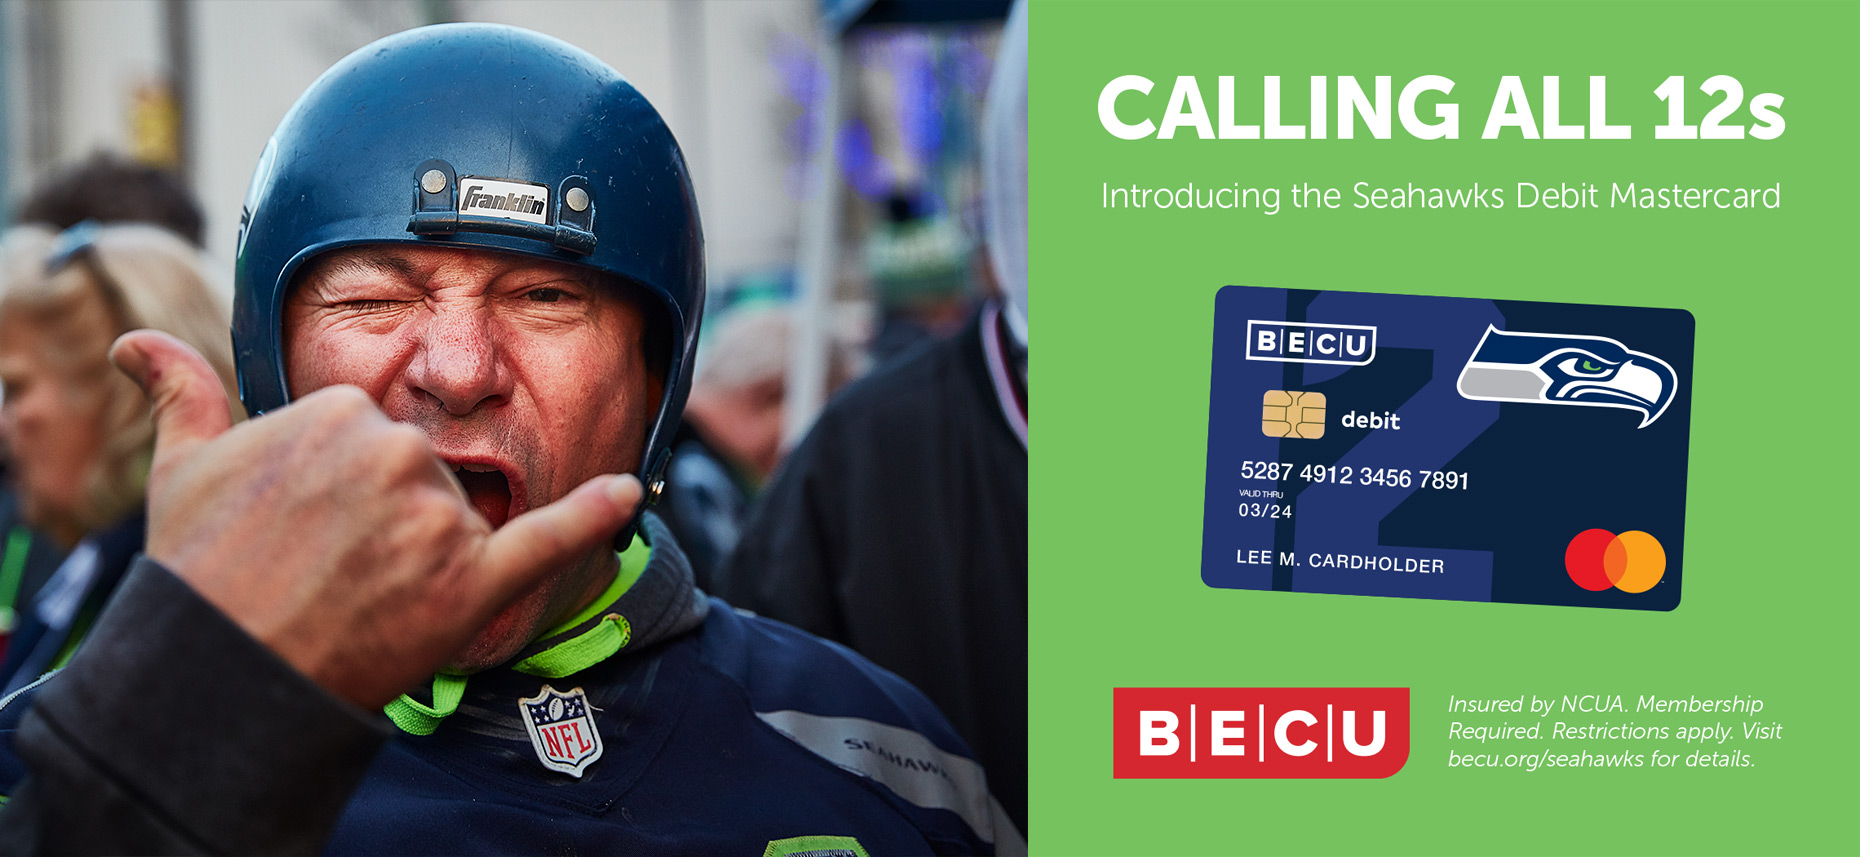 20-BEC-0043_Seahawks_OOH_EcoPoster_F_x1a_1